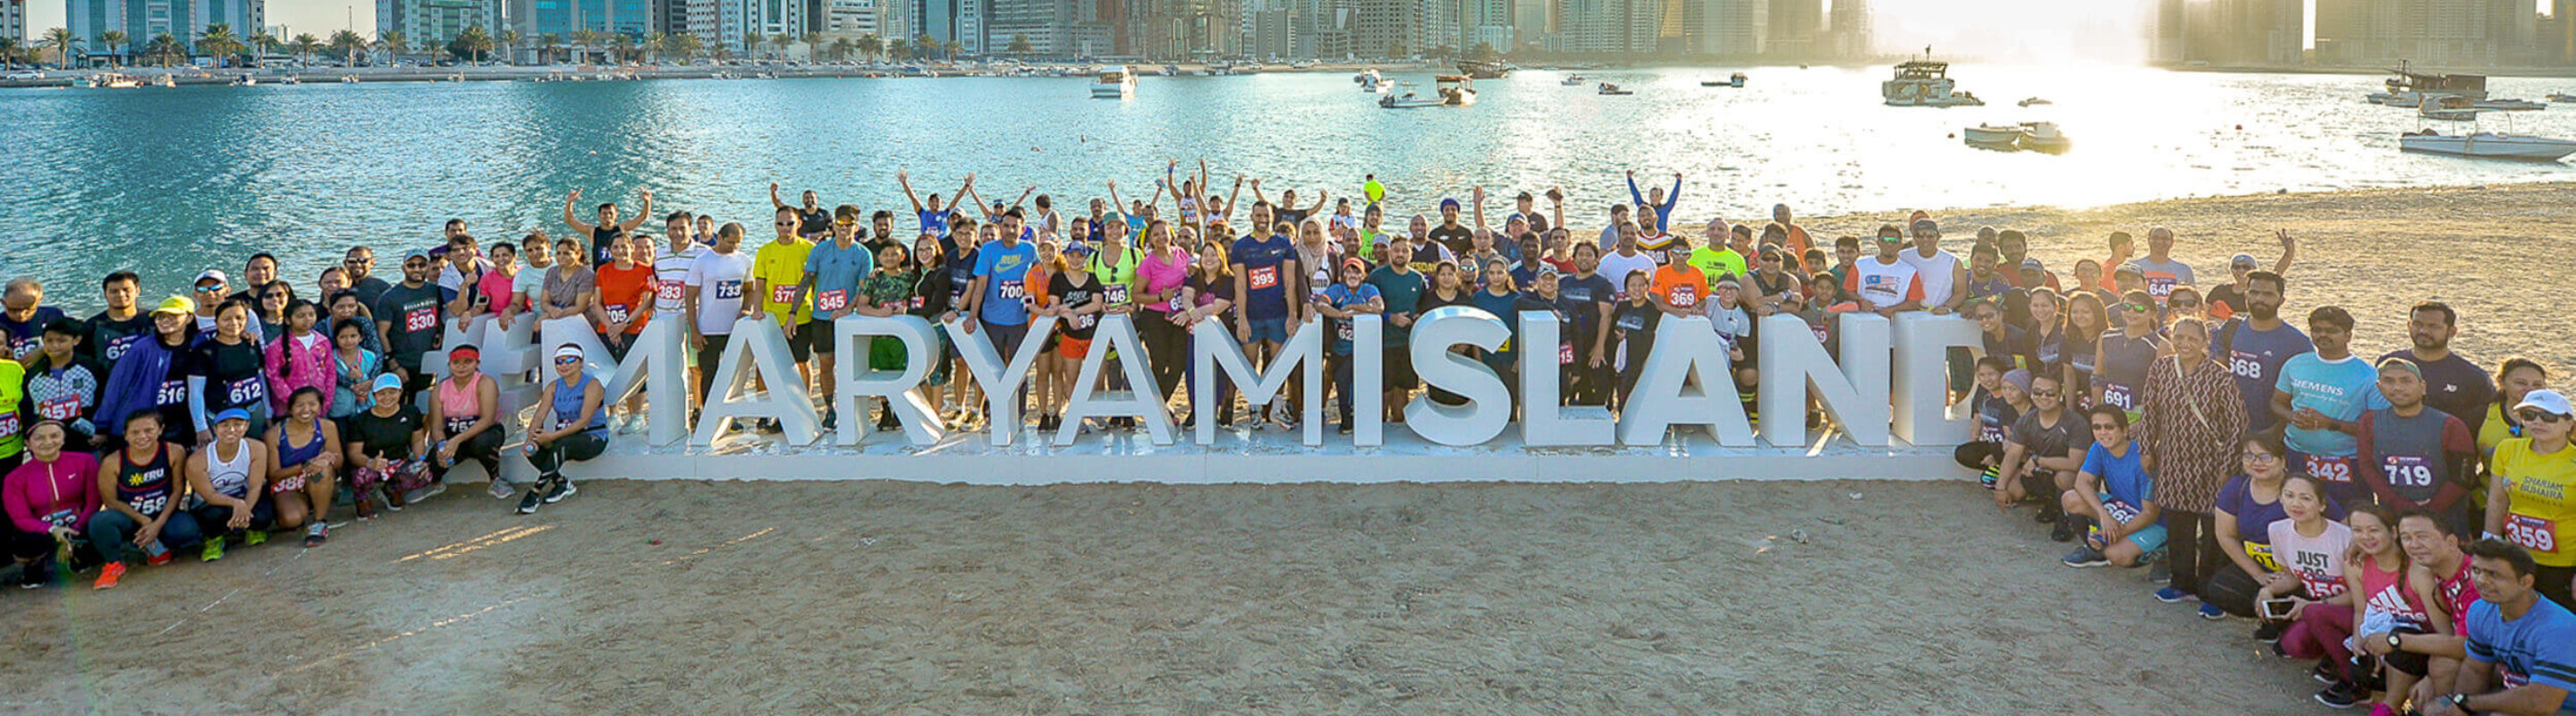 Maryam Island Run Sharjah Corniche